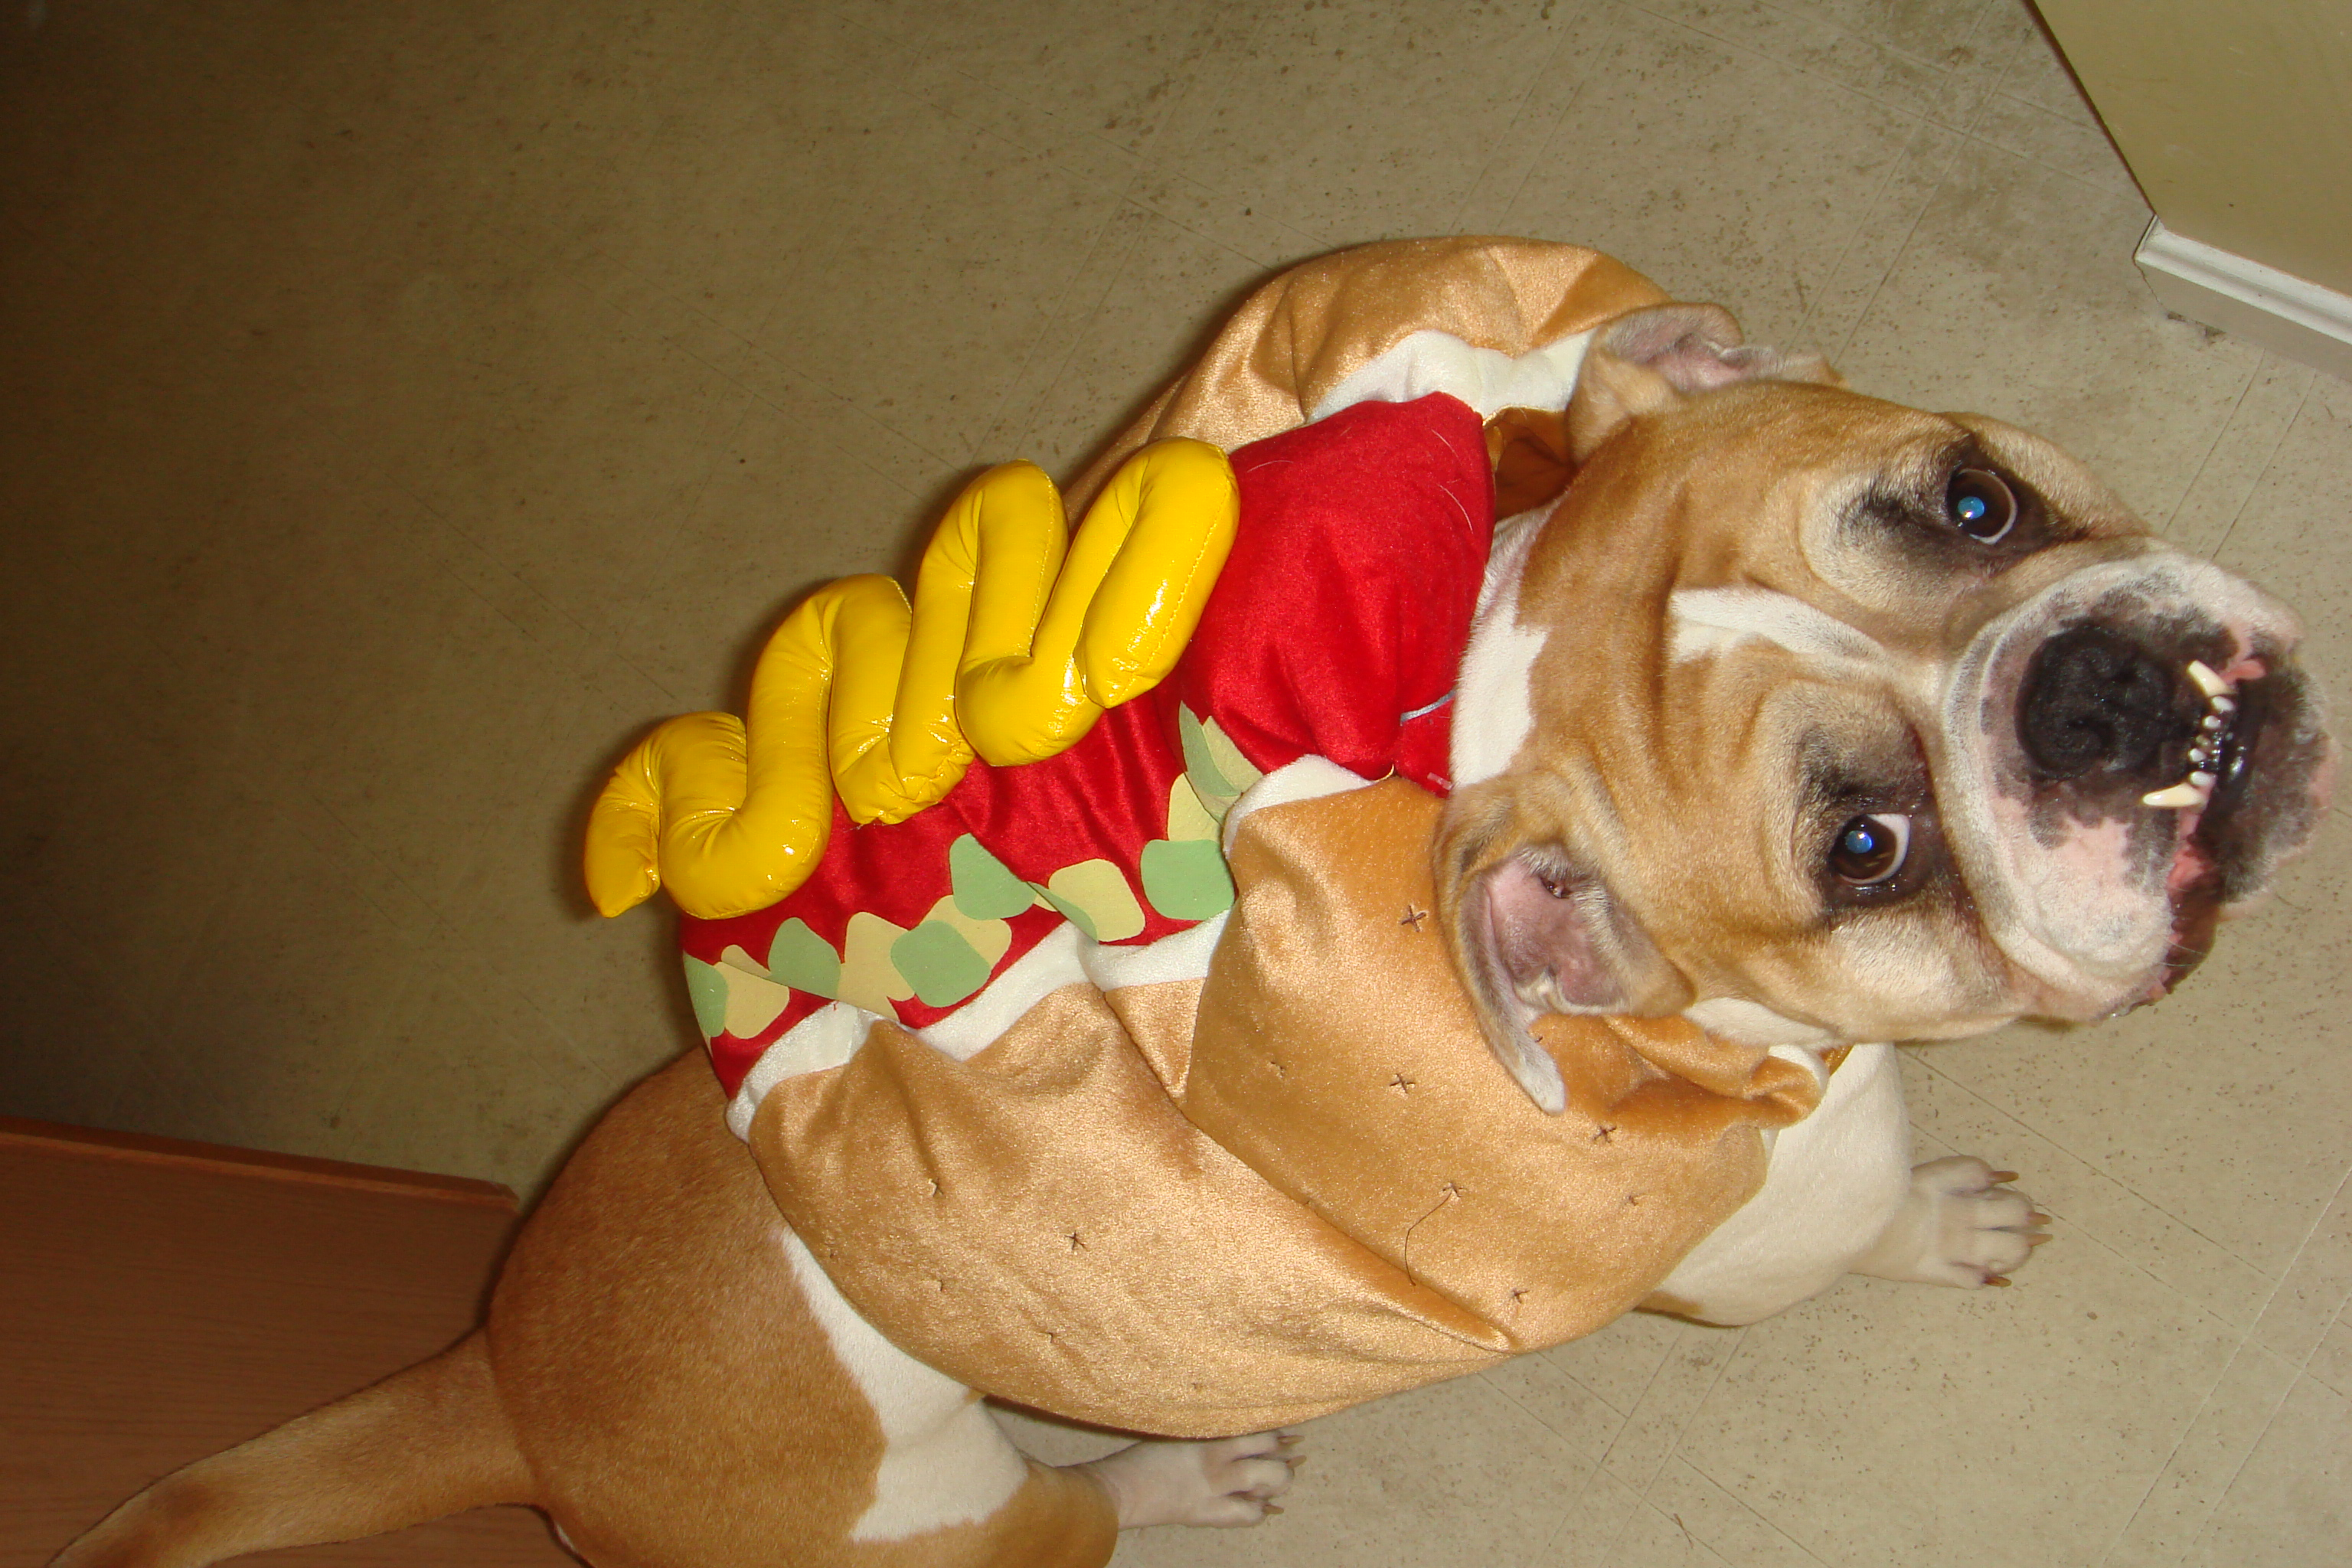 Poor Butch had to be a Hotdog for Halloween